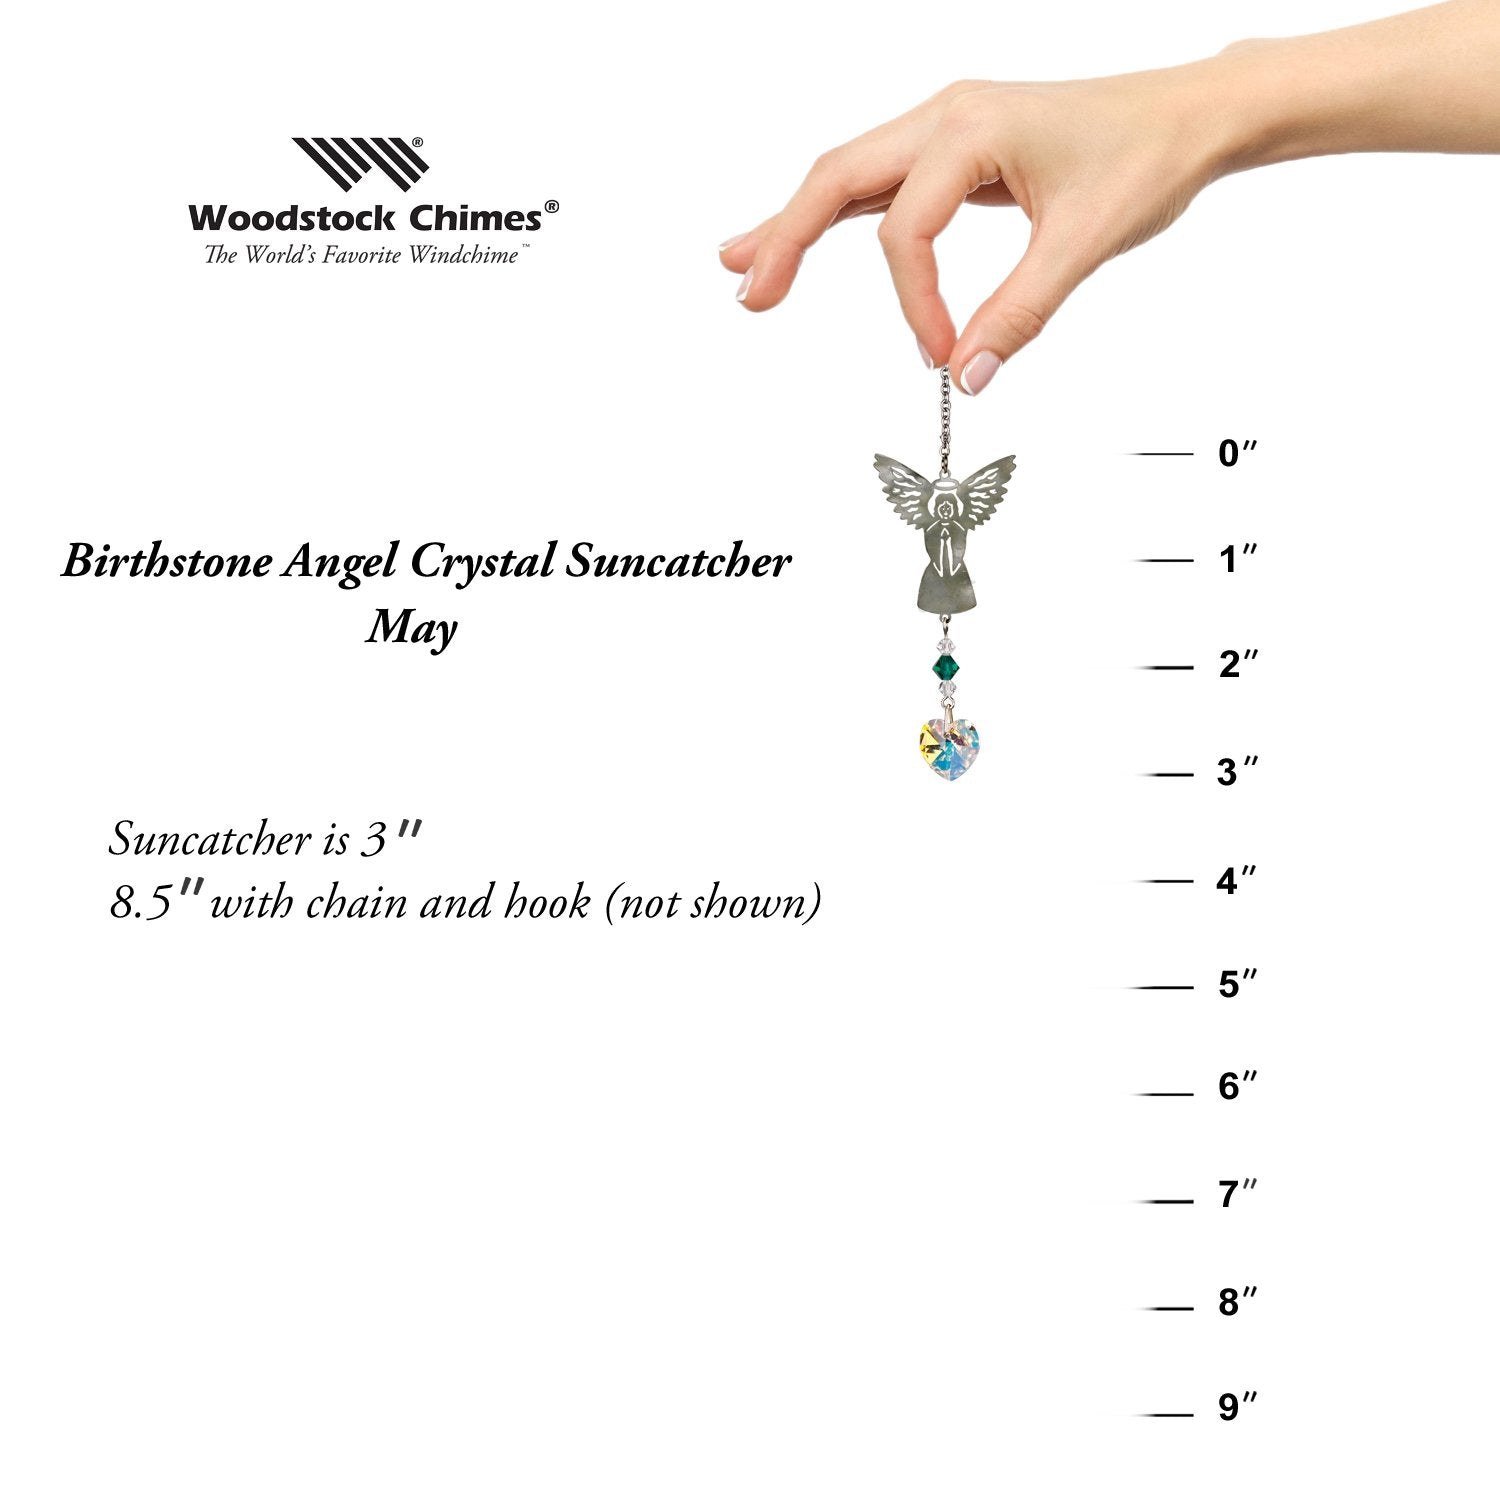 Birthstone Angel Crystal Suncatcher - May proportion image